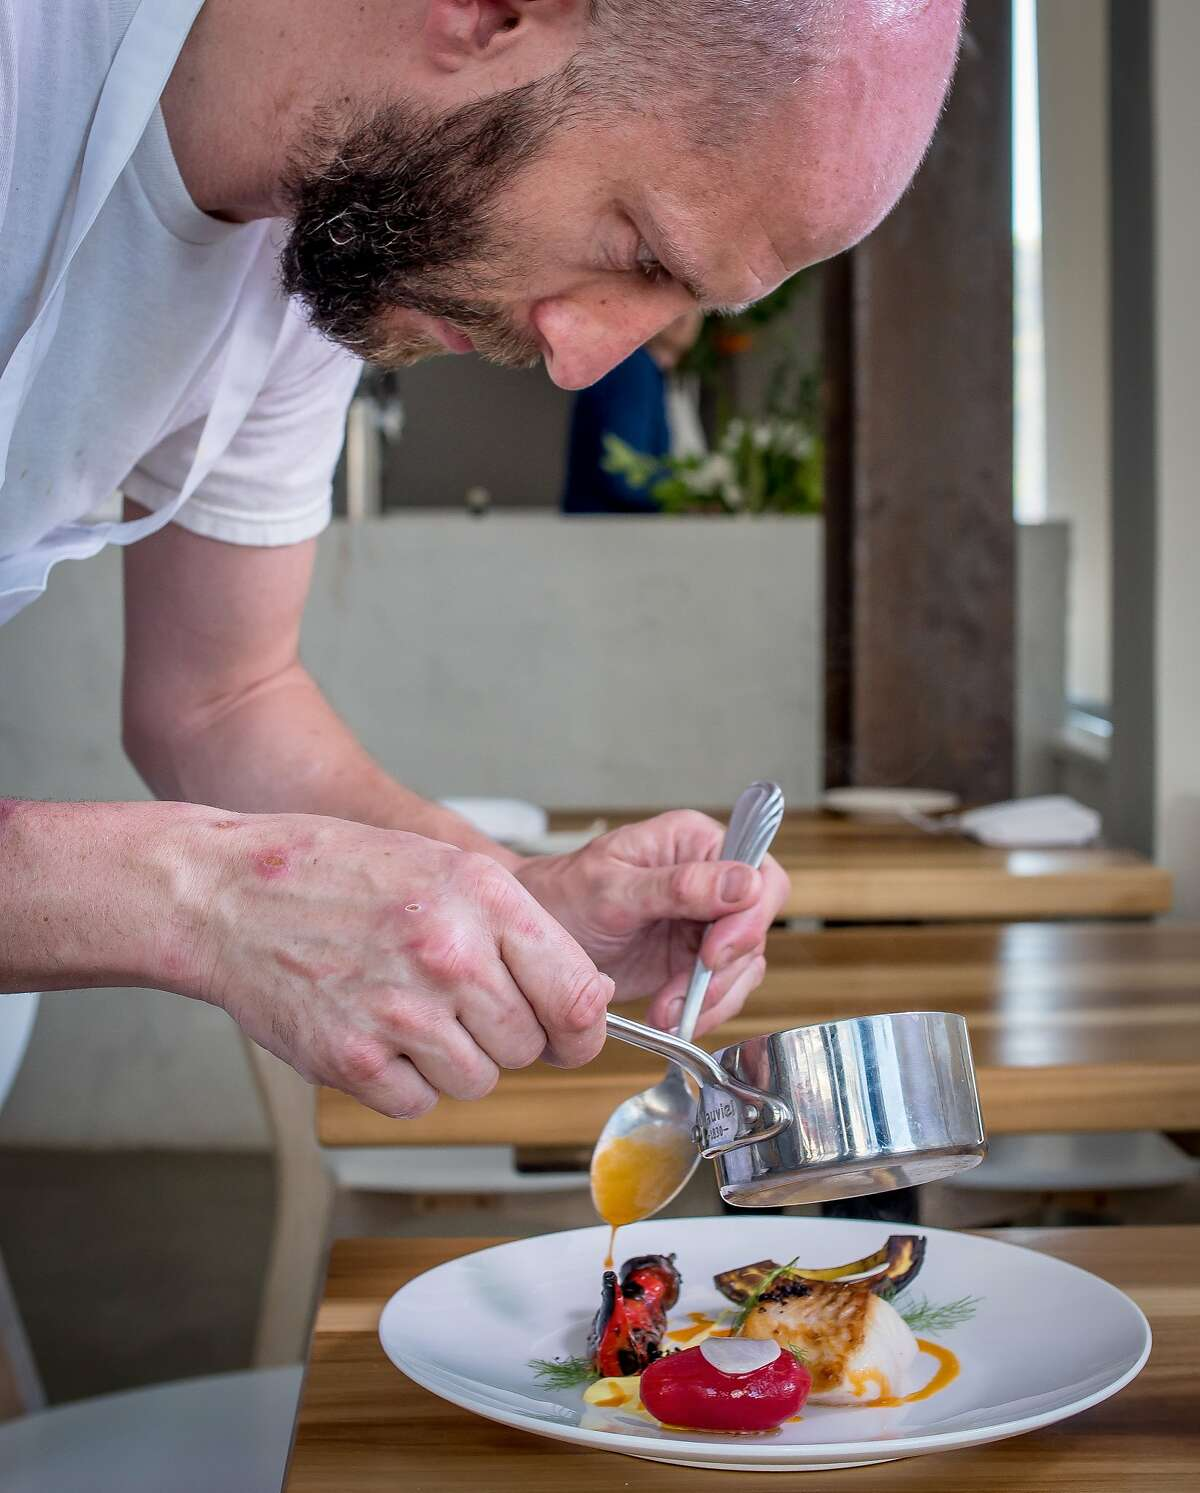 Chef Rupert Blease plates the fried Cod at Lord Stanley in San Francisco, Calif., on July 30th, 2015.